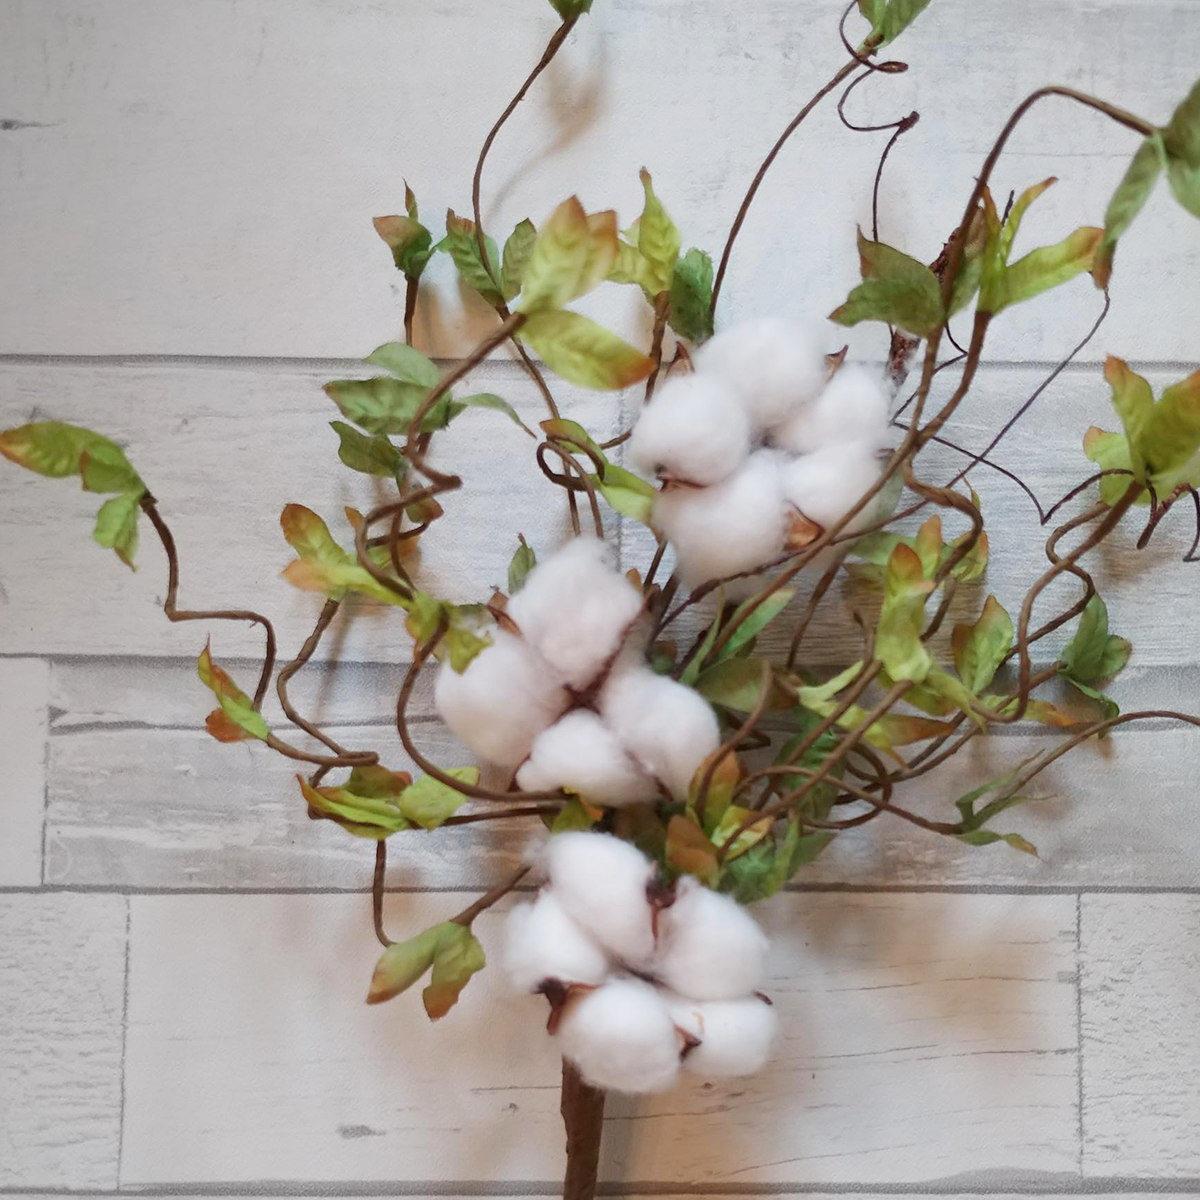 Cotton Stem with Leaves